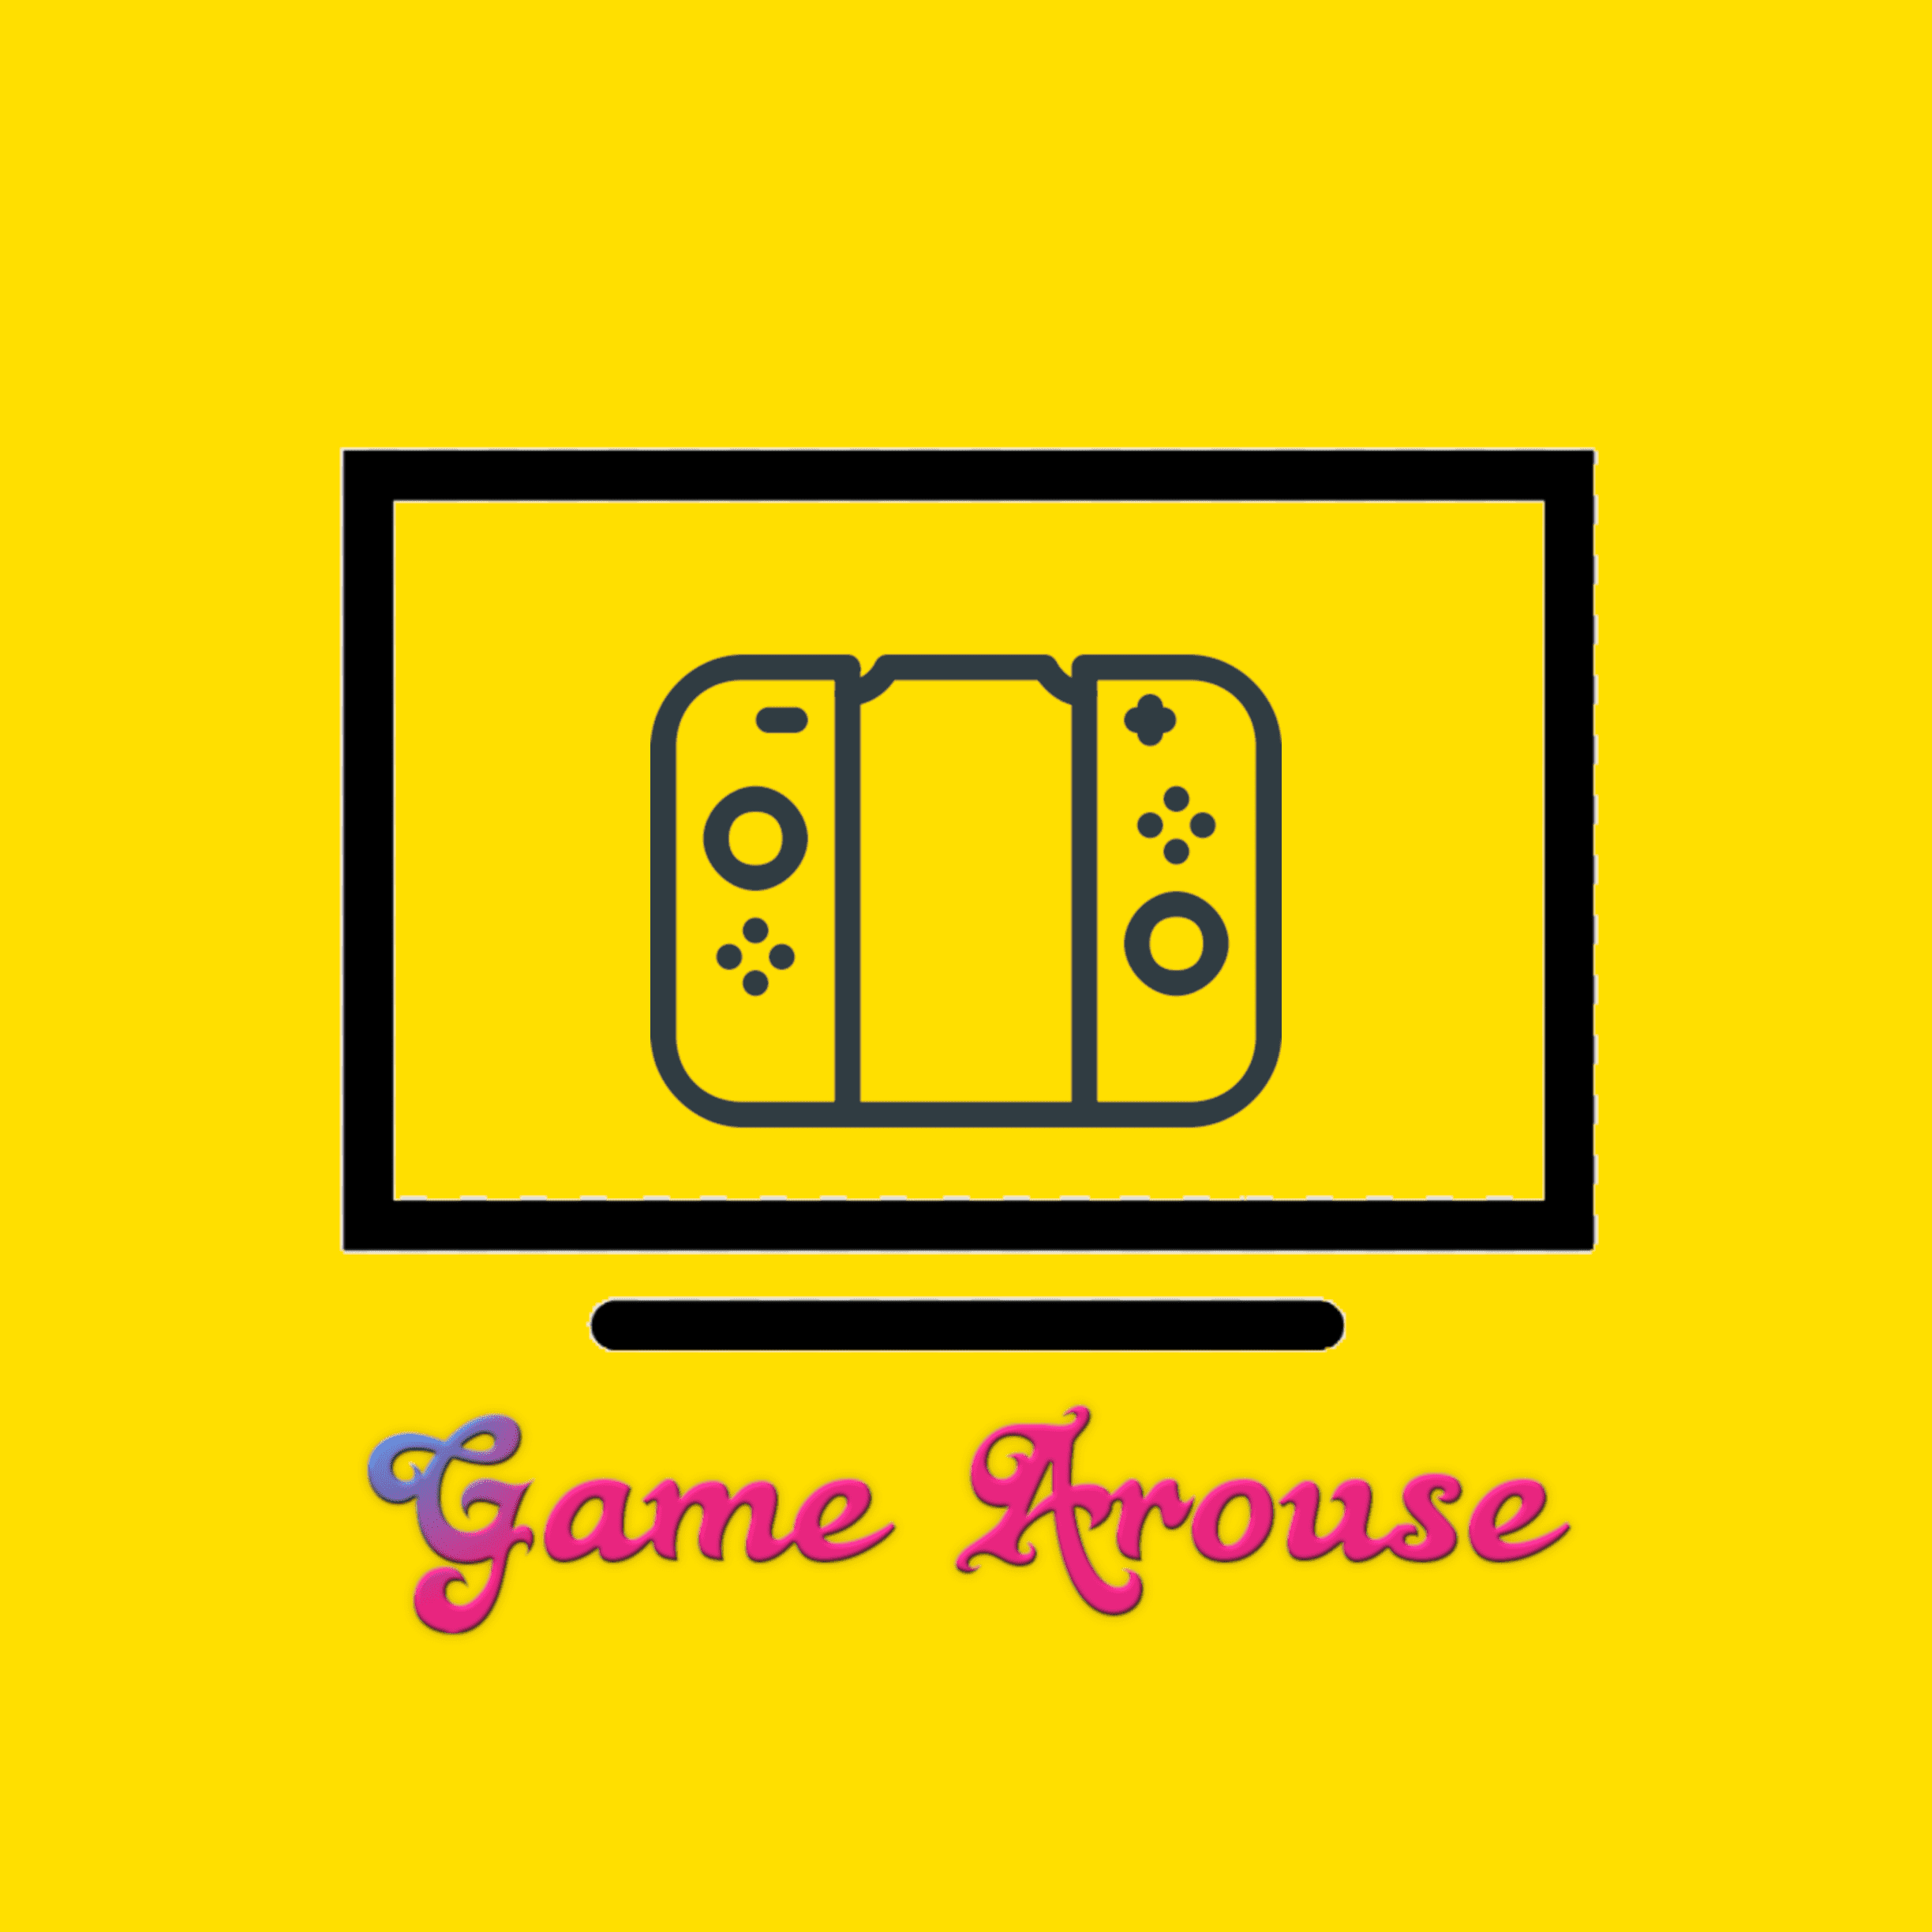 Game Arouse